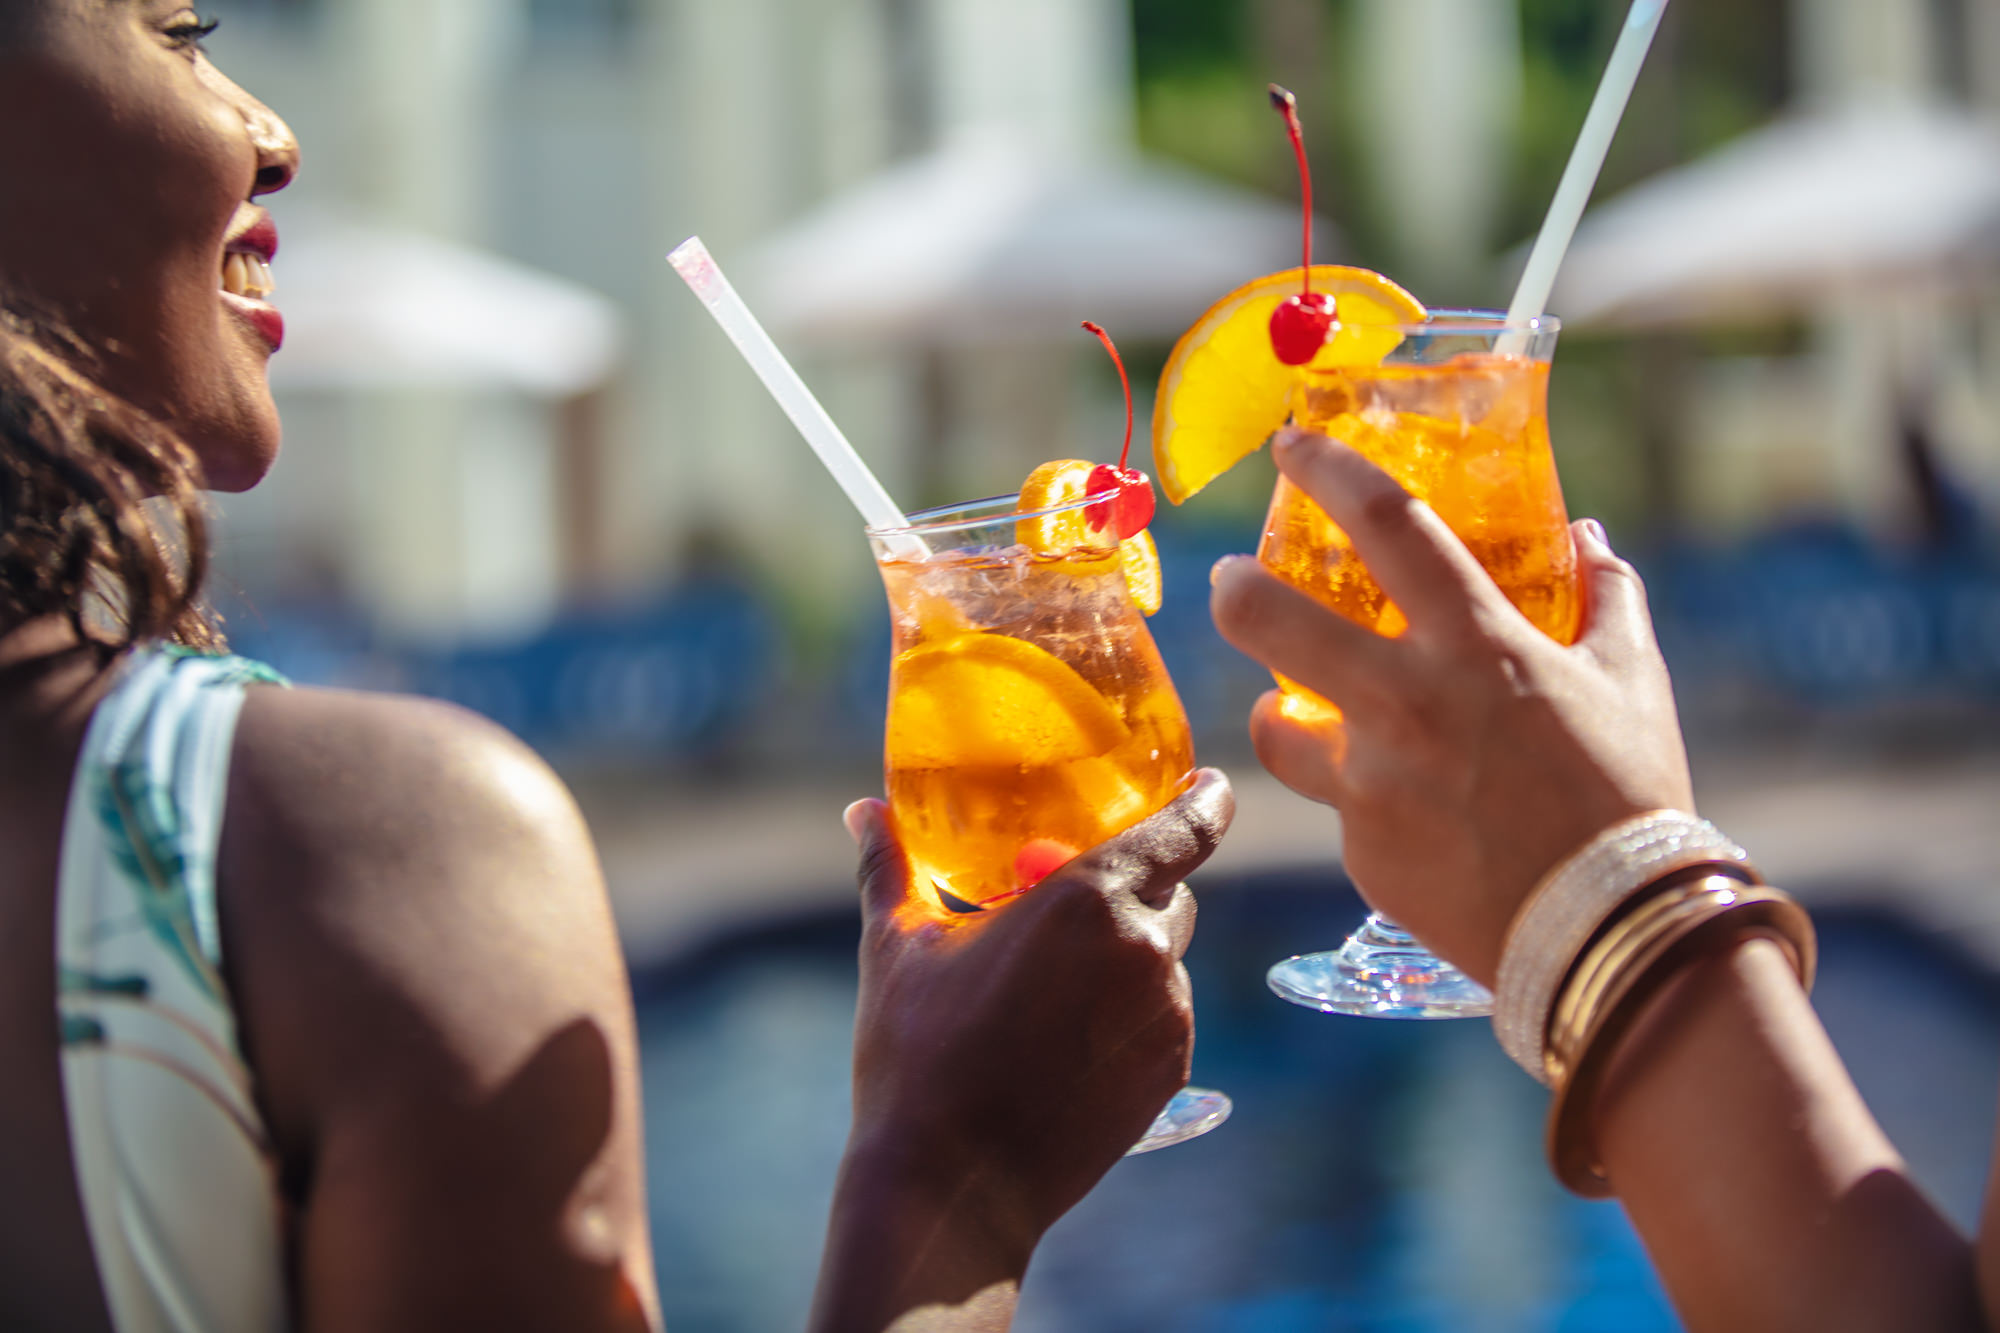 Image of girl friends having a drink at the Southern Sun The Cullinan Hotel at the pool for Tsogo Sun's Image Library & Content Library by Michelle Wastie Photography